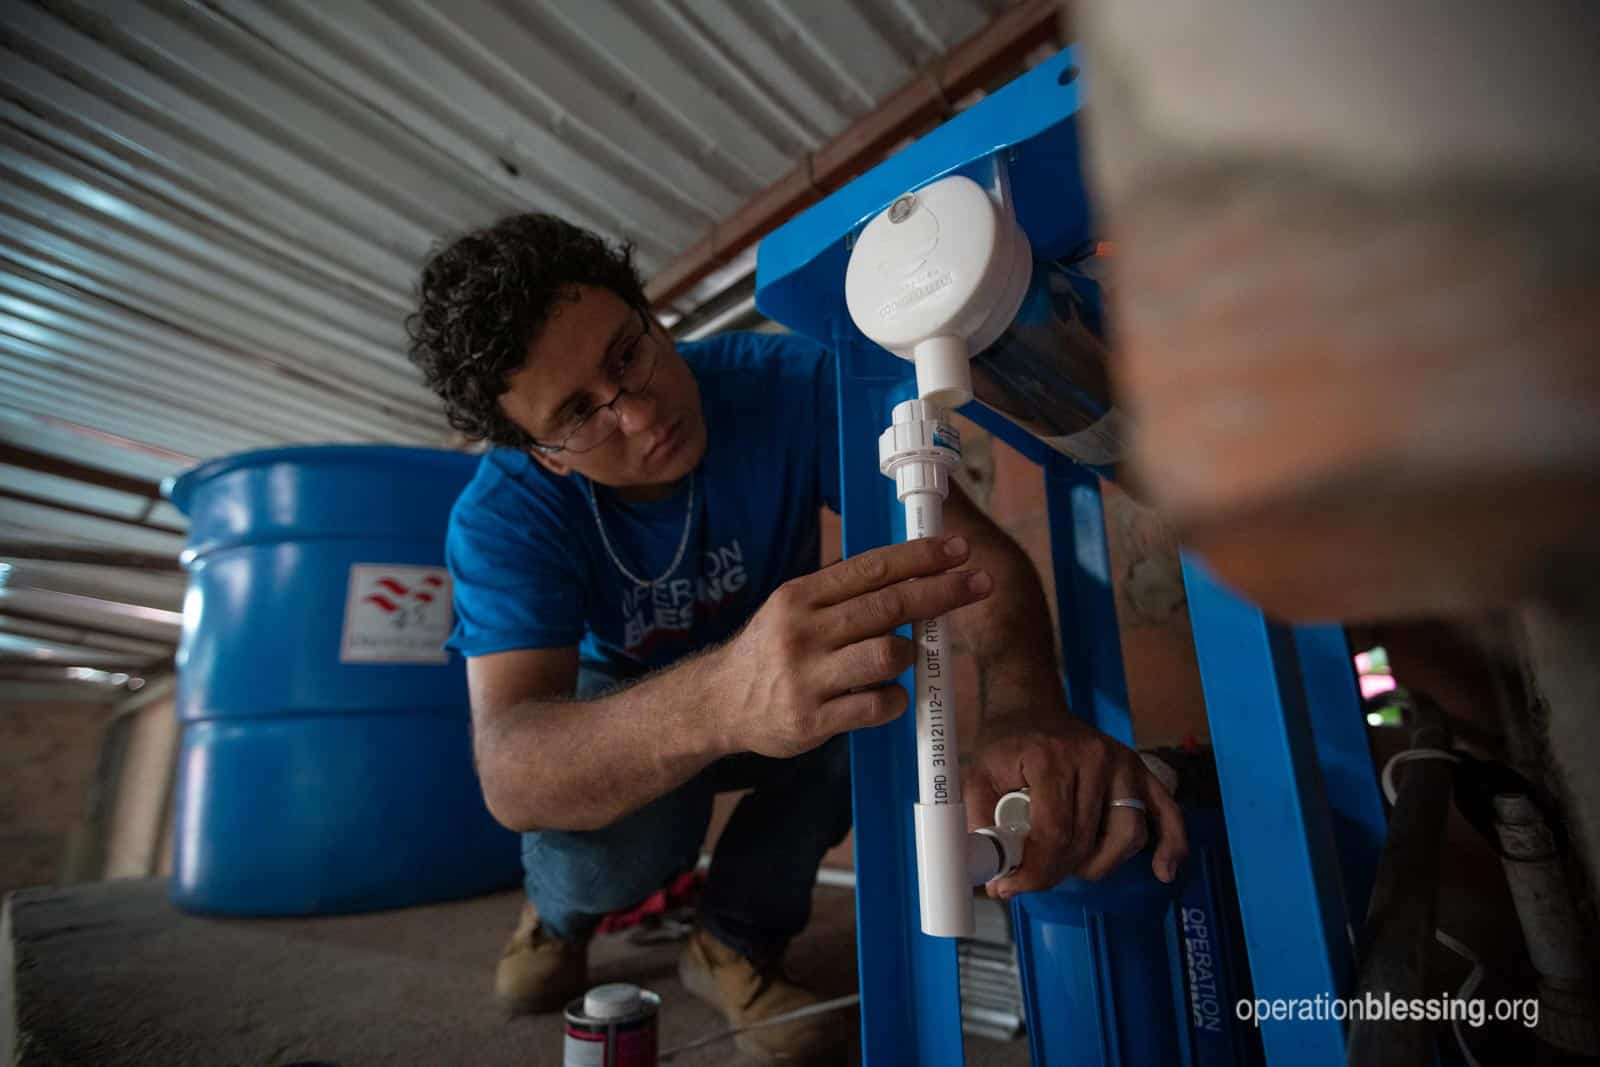 An Operation Blessing worker installs a safe water system for Venezuelan refugees.